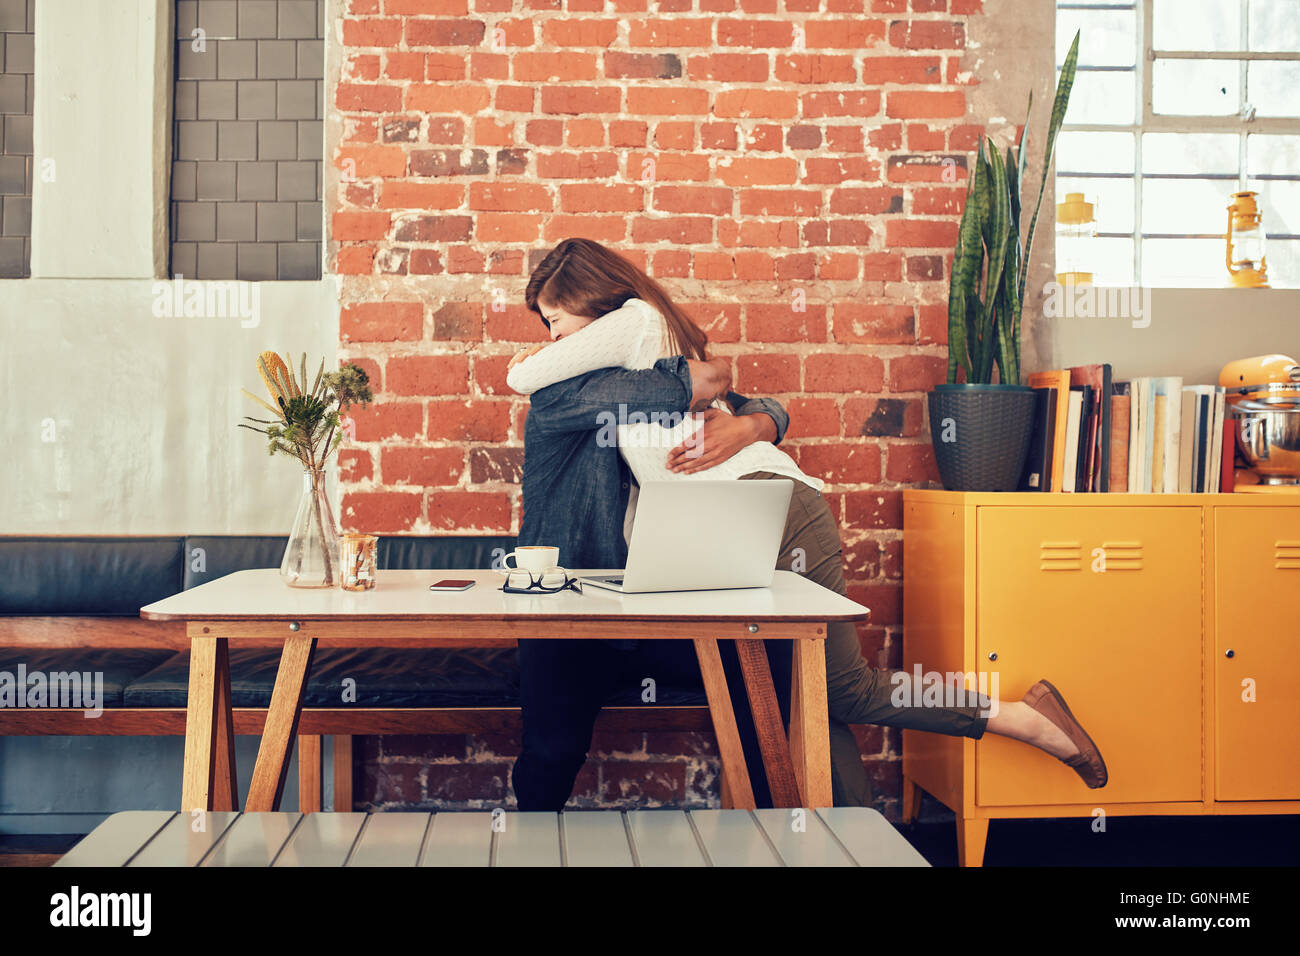 Portrait of man and woman embracing each other at a cafe, couple meeting in a coffee shop. Stock Photo